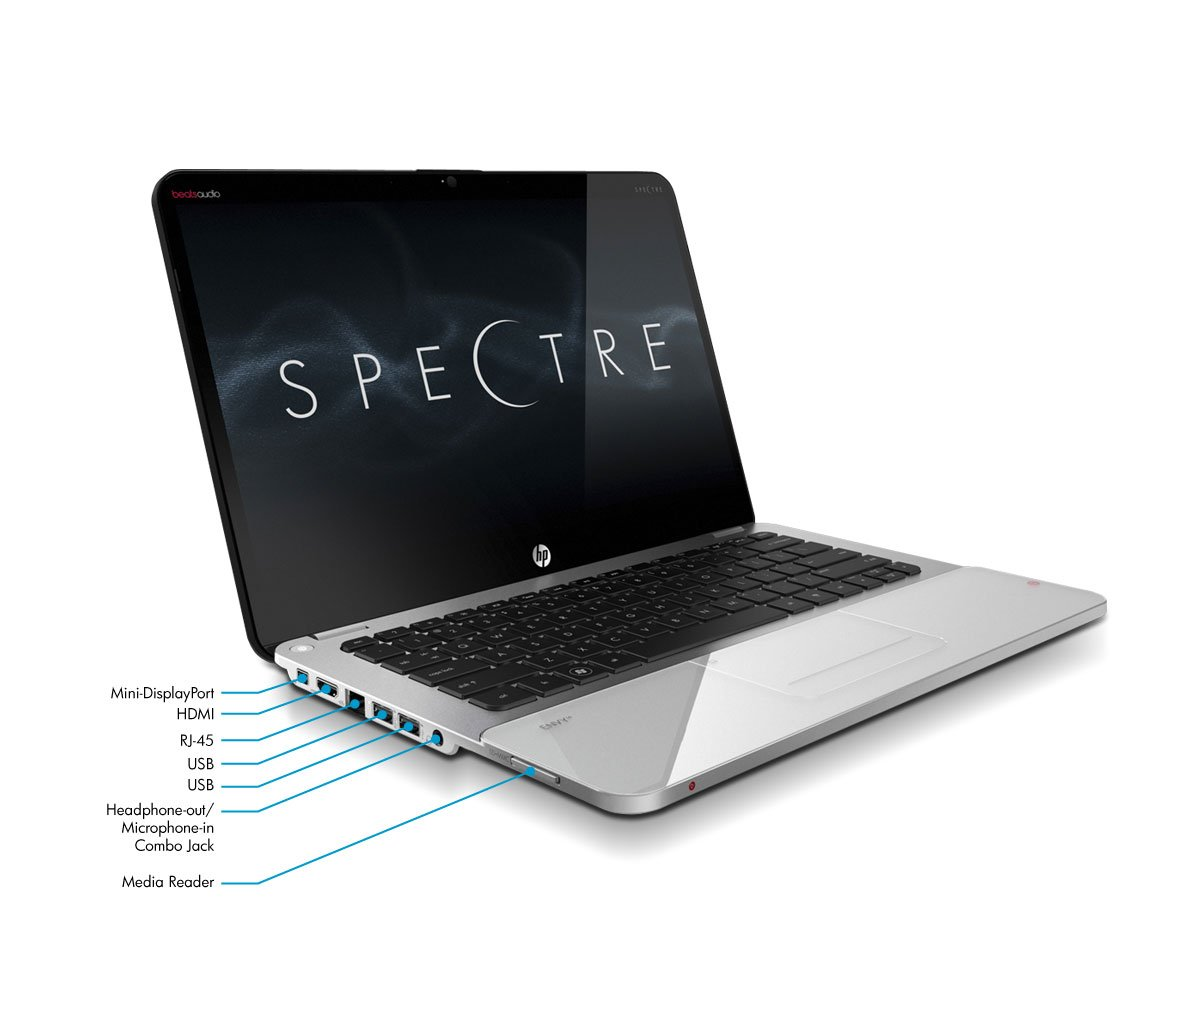 Amazon.com: HP ENVY 14-3010NR Spectre 14-Inch Ultrabook (Silver/Black):  Computers & Accessories